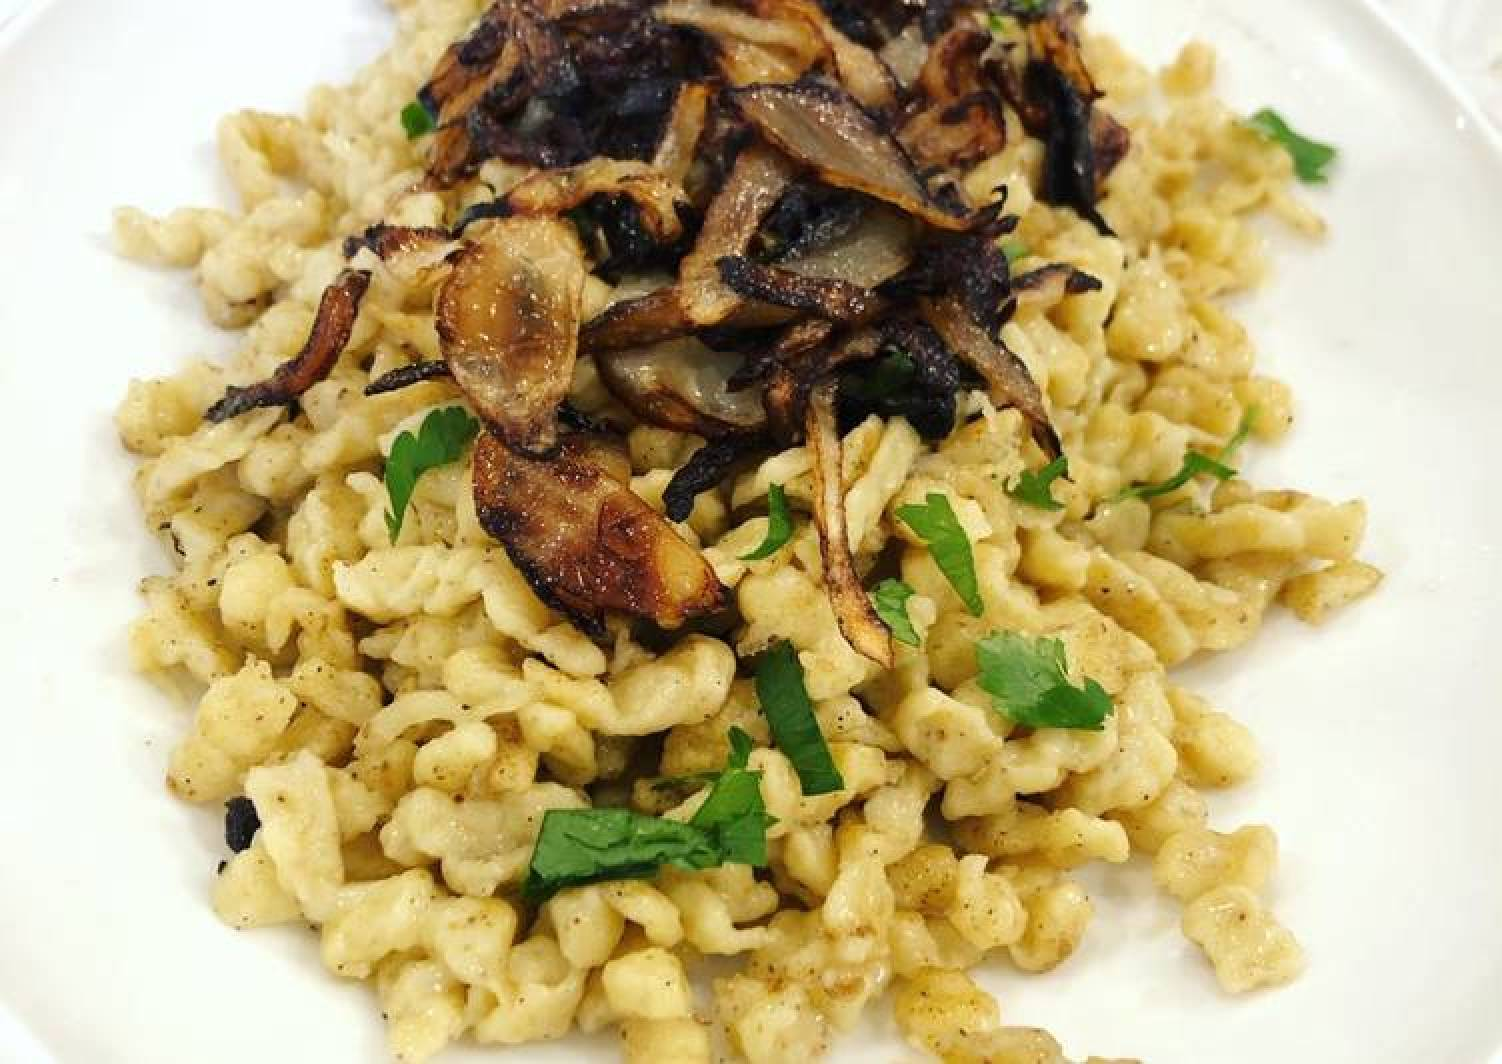 Spaetzle with Butter, Fried Onion, and Gruyere Cheese